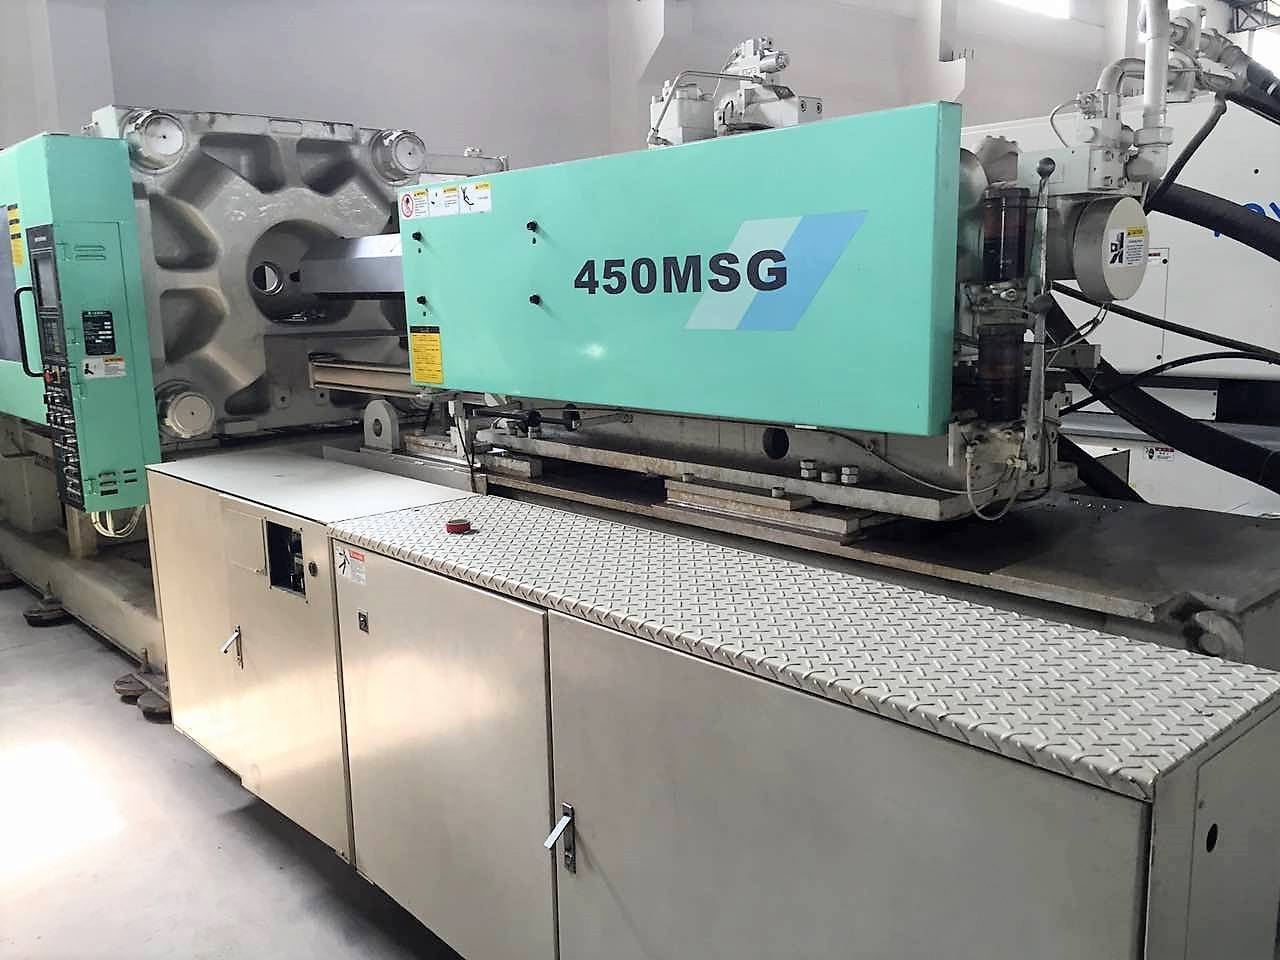 Mitsubishi 450t (450MSG) Used Injection Moulding Machine Featured Image